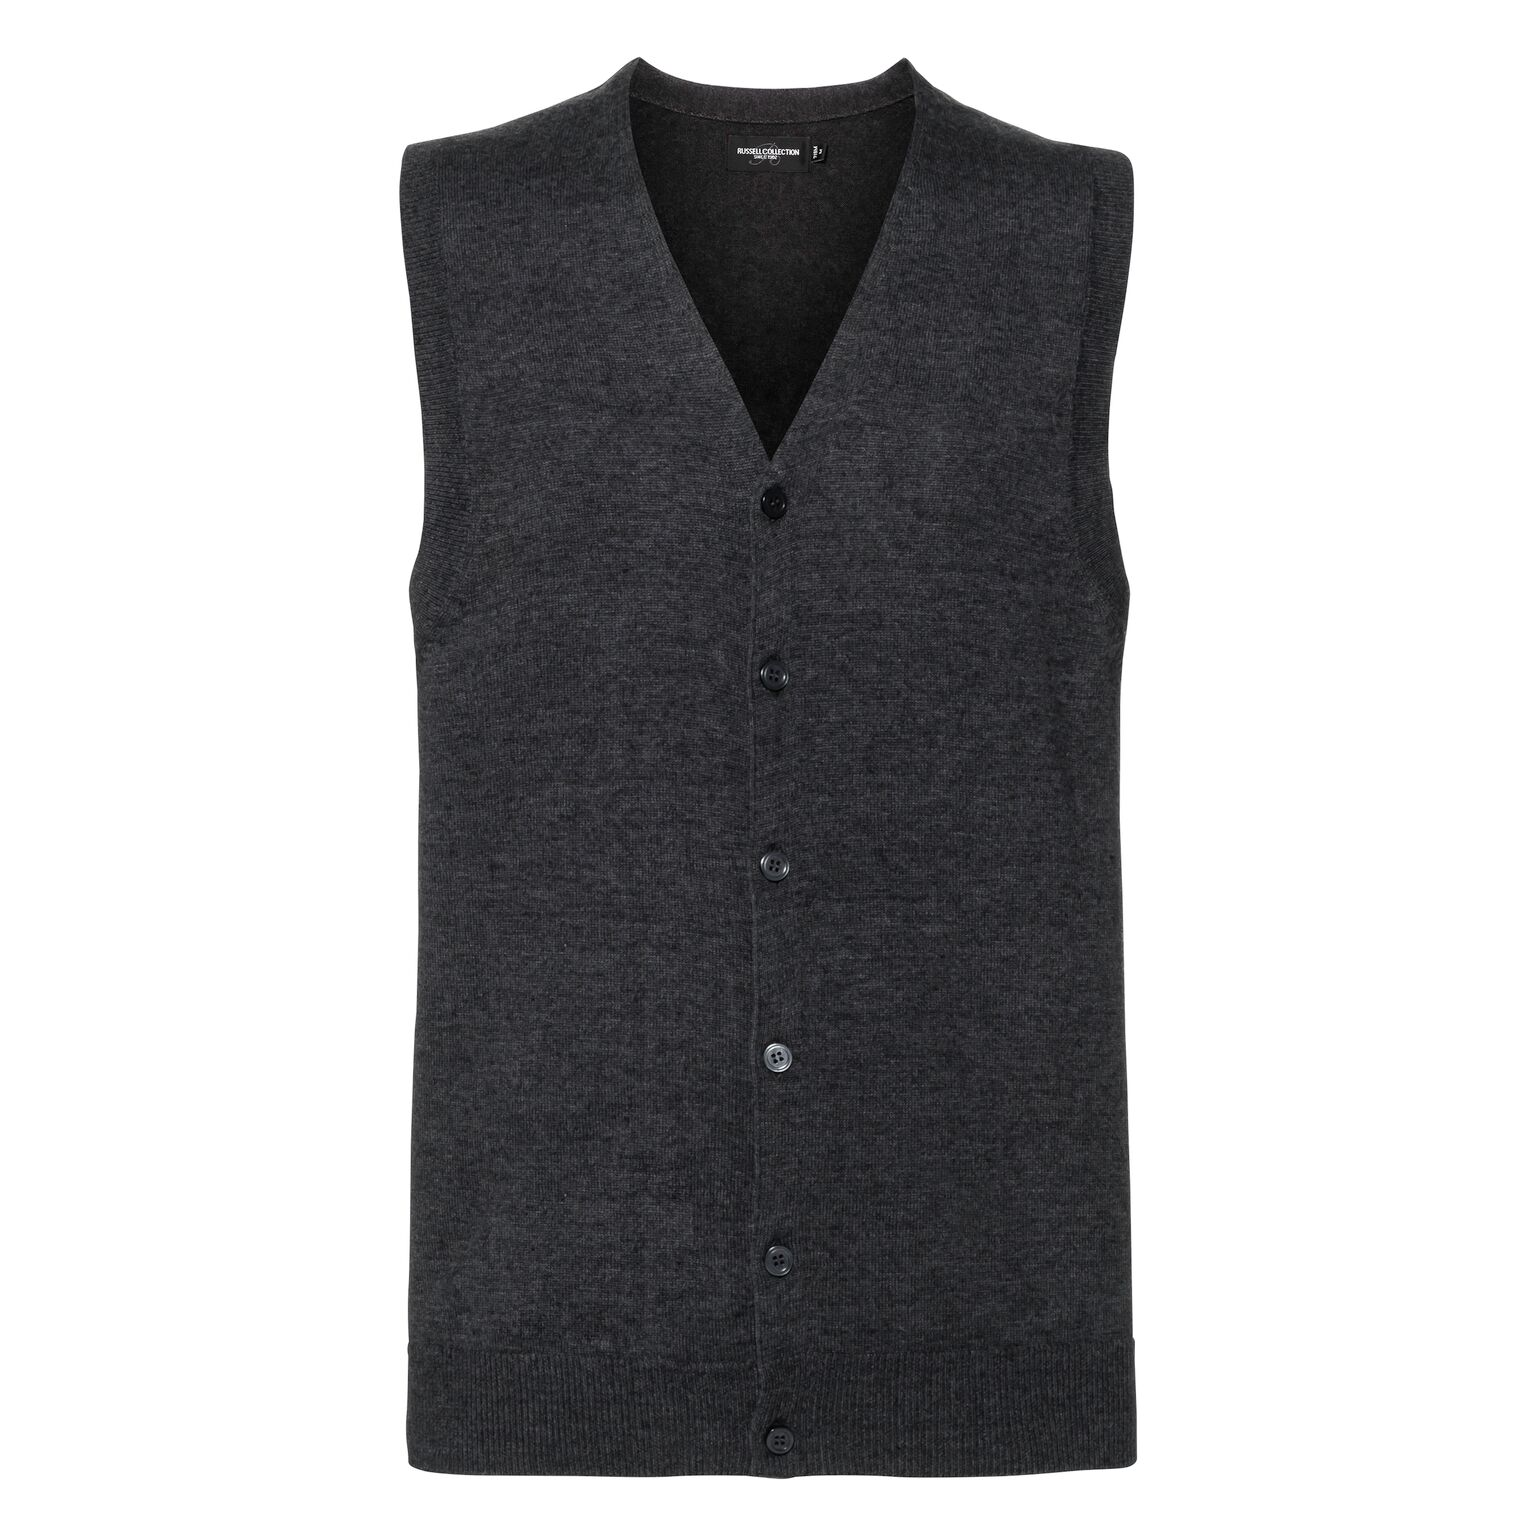 Russell Mens Sleeveless Cotton Acrylic V Neck Cardigan (XS) (Charcoal Marl)